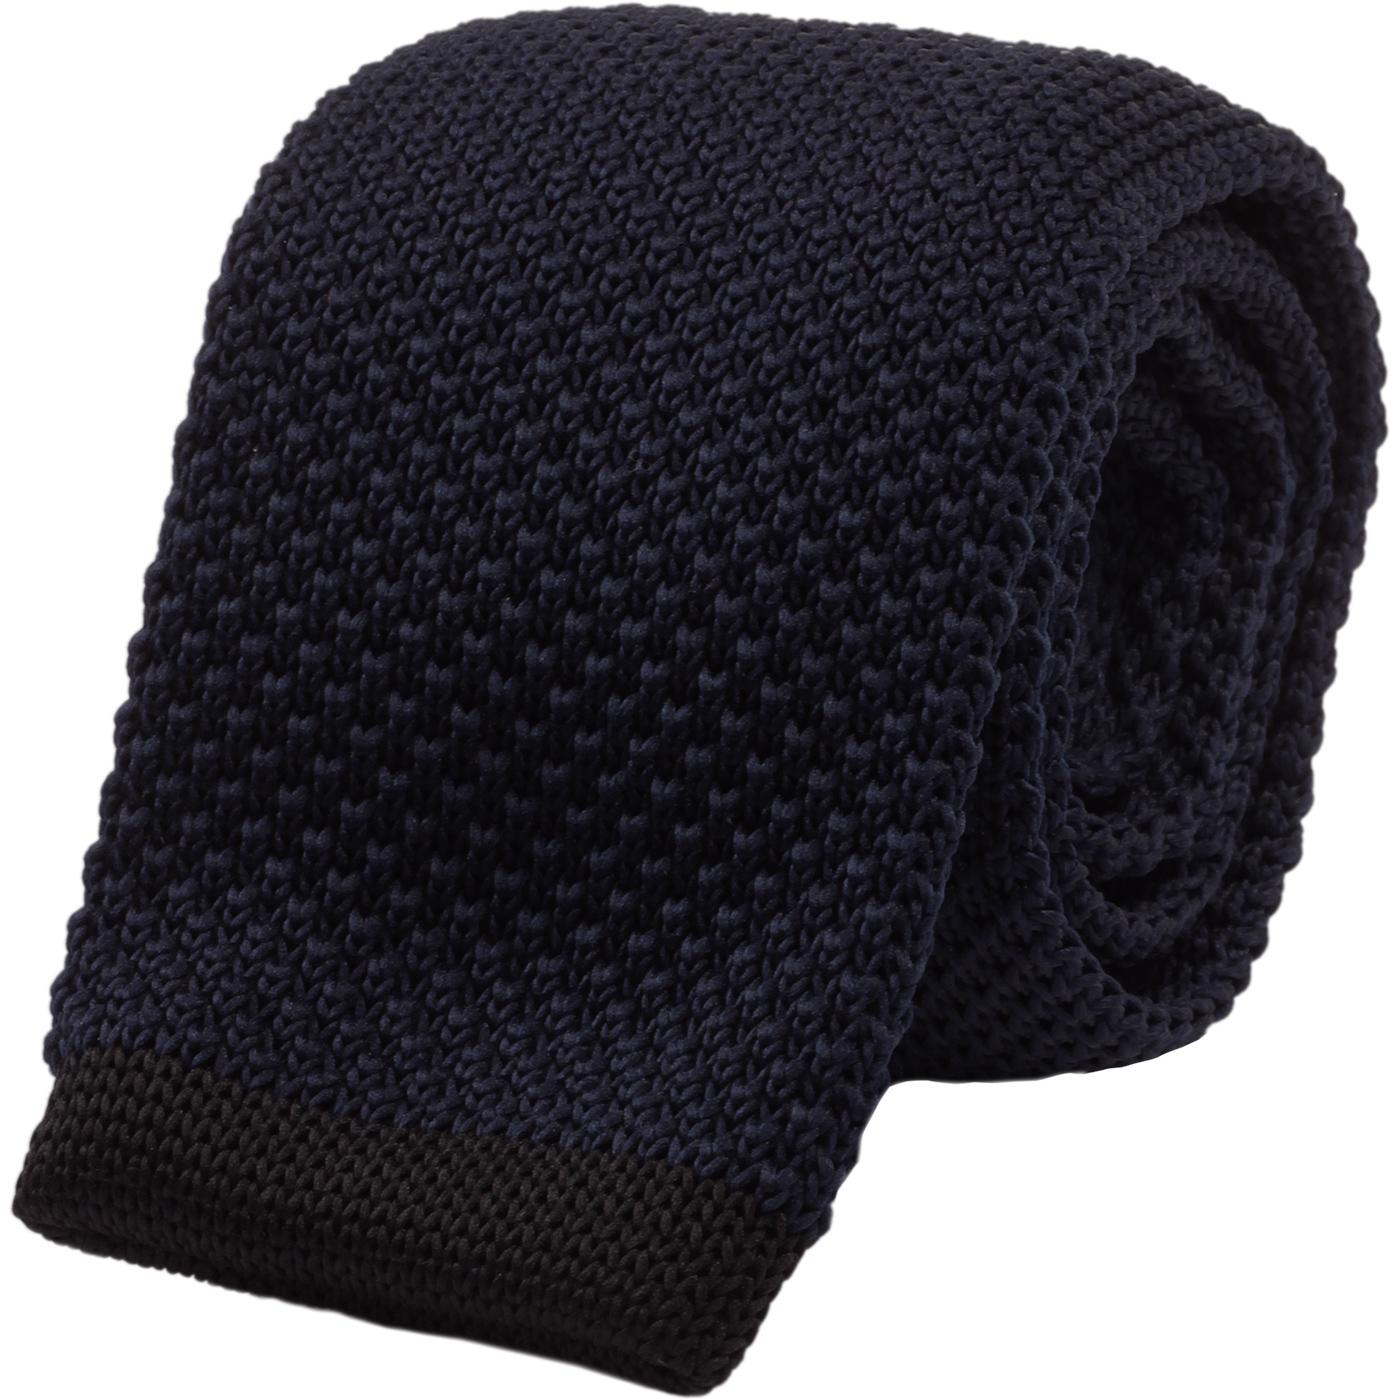 GIBSON LONDON 60s Mod Square End Knit Tie (Navy)